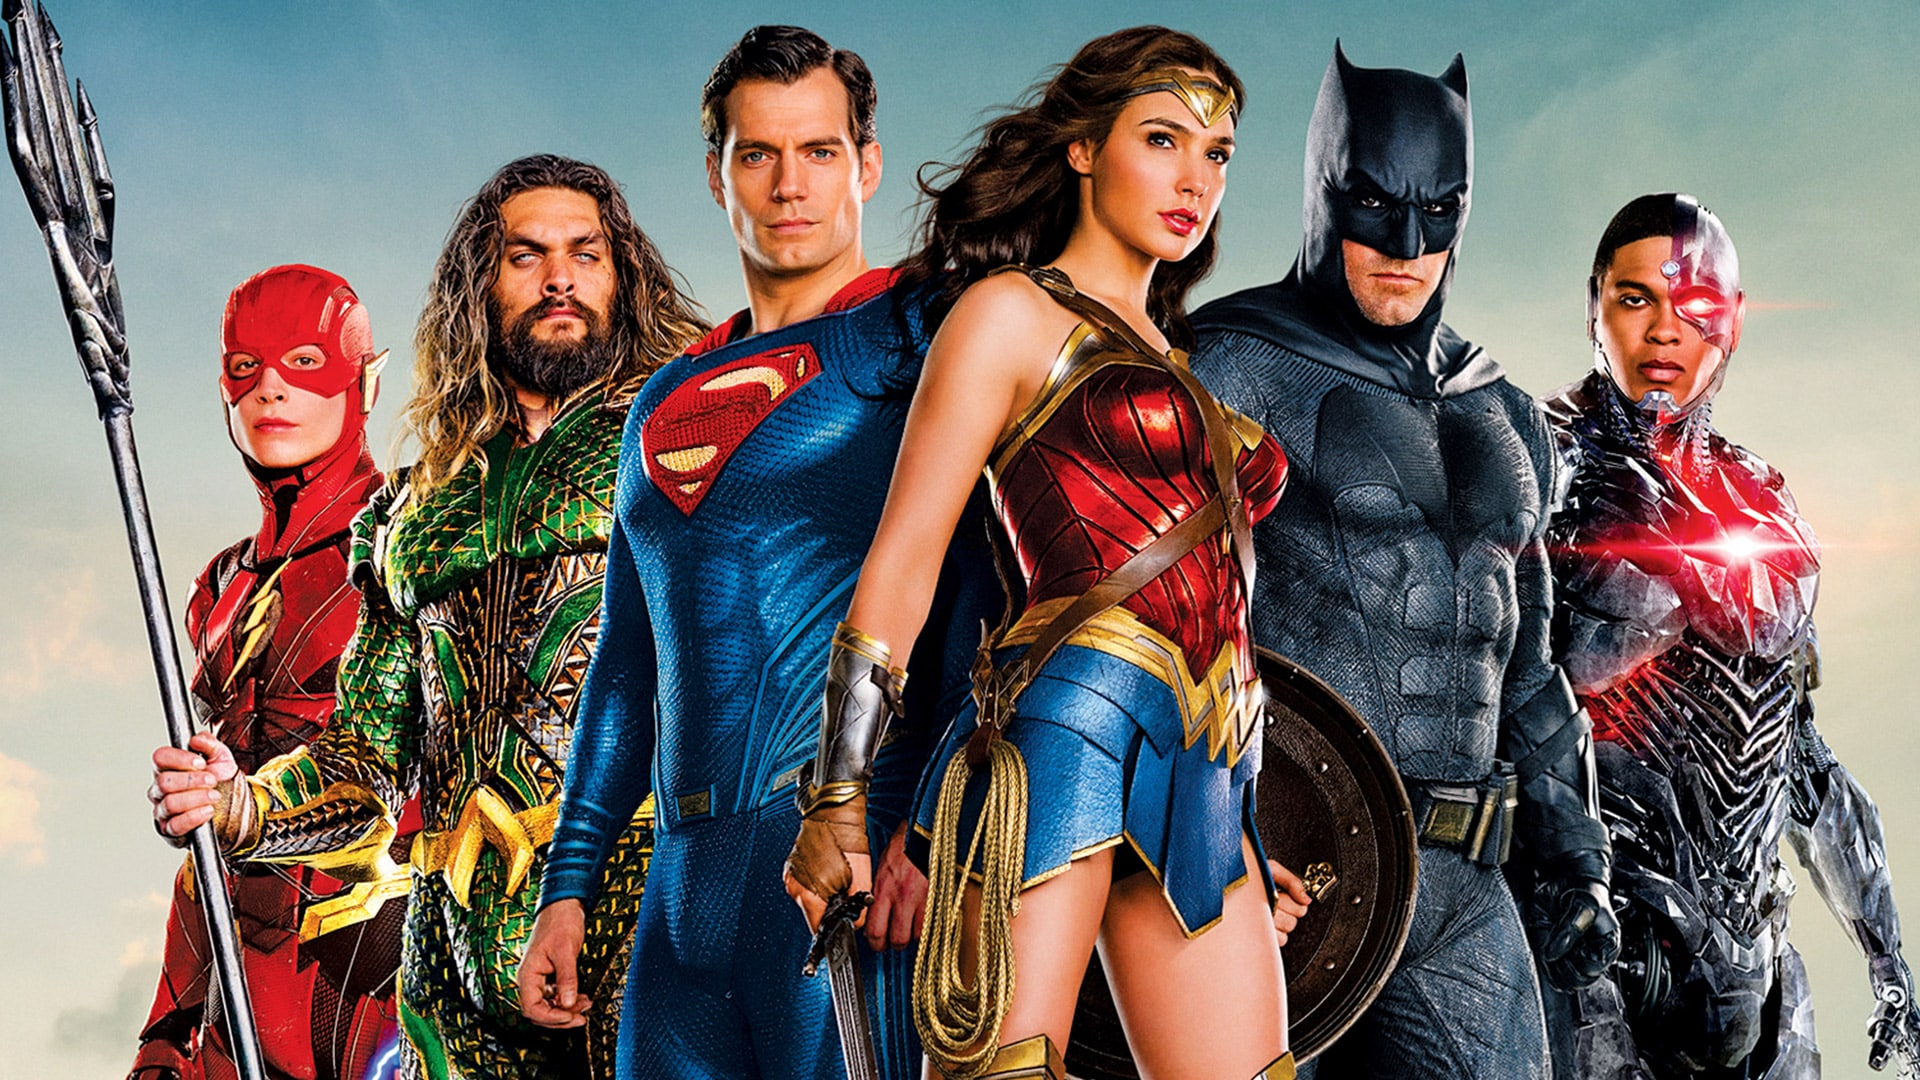 Justice League: guida ai personaggi del film di Zack Snyder